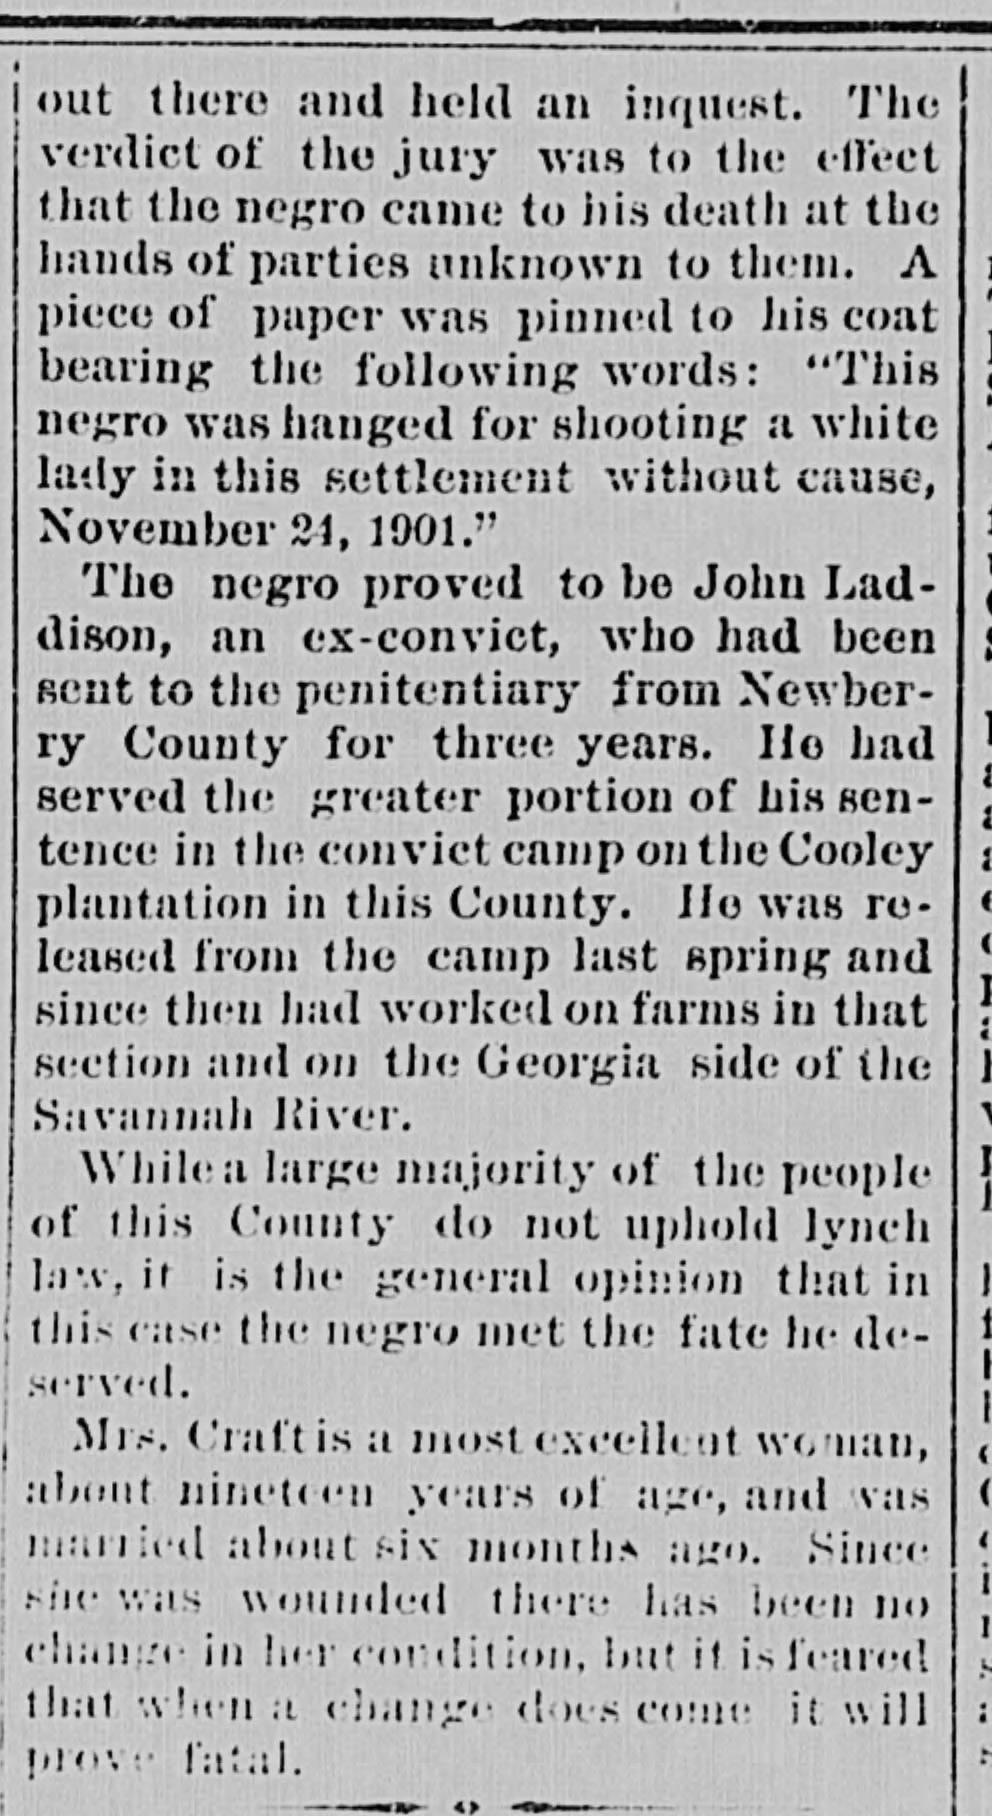 An article written about the lynching of John Laddison in the Nov. 27, 1901, issue of The Intelligencer.